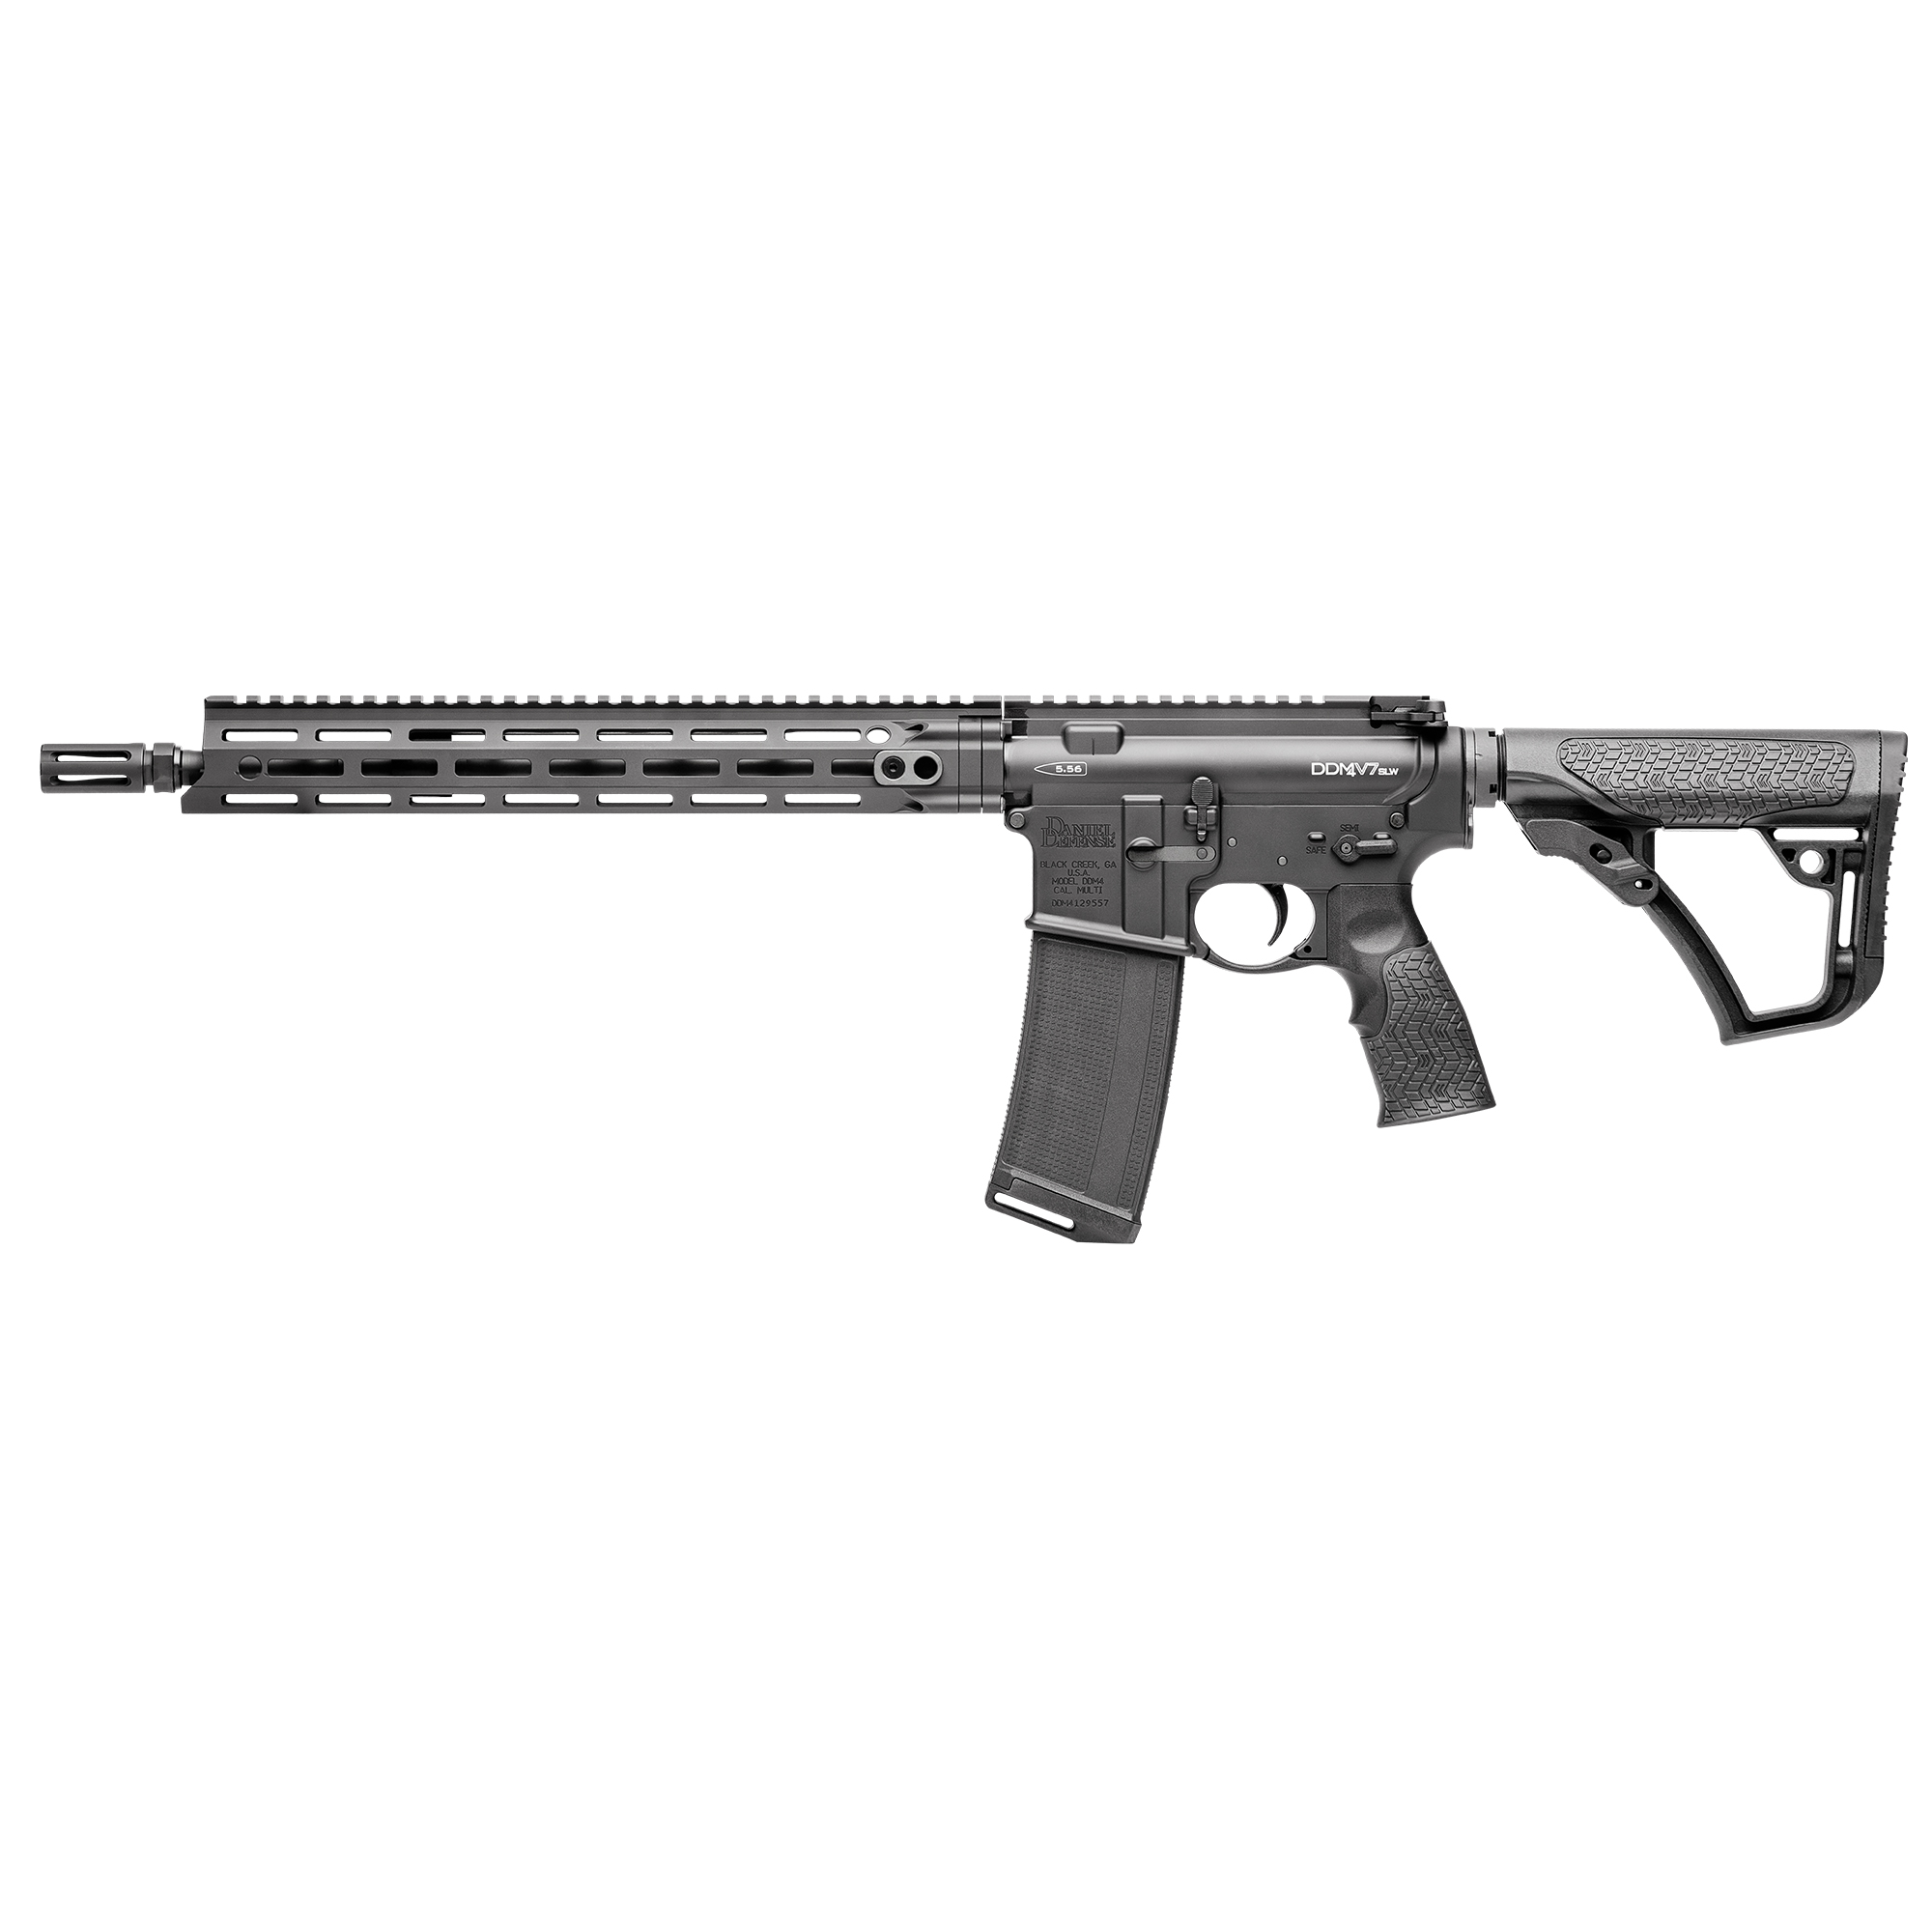 "The Daniel Defense M4 V7 SLW is one of the lightest"" fastest-handling rifles available in the DDM4 line-up"" tipping the scales at under 6 lbs. Built around a Cold Hammer Forged"" 14.5"" Lightweight profile barrel"" the V7 SLW has an Extended Flash Suppressor which is pinned and welded to reach the NFA required 16"" minimum barrel length. The mid-length gas system provides smooth and reliable cycling under any conditions and reduces both perceived recoil and wear on moving parts."